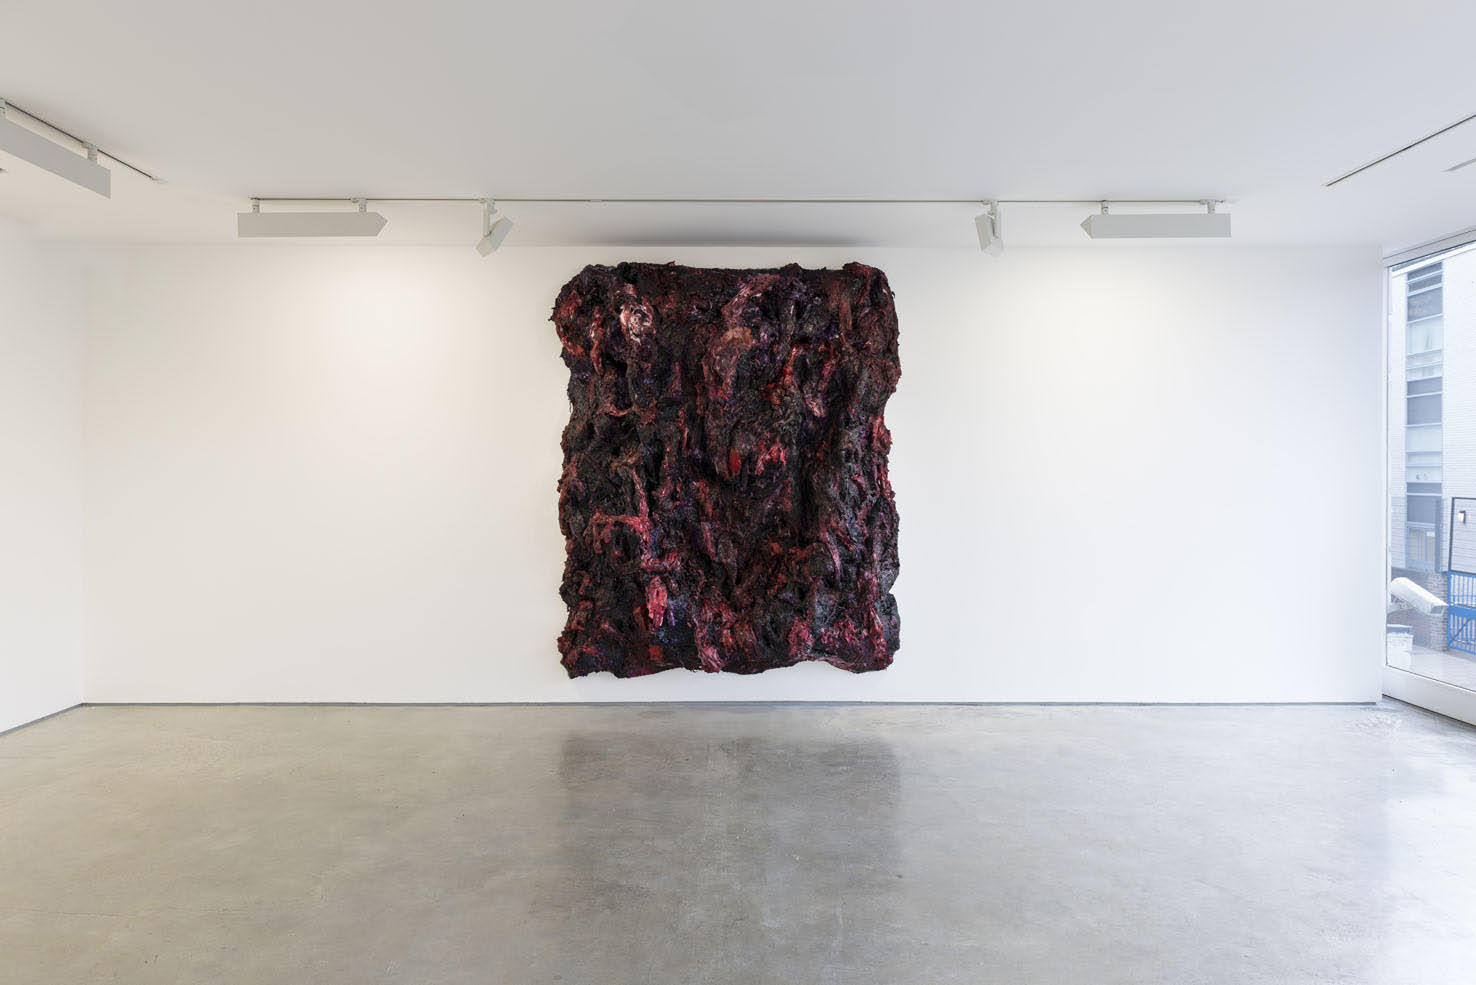 Anish Kapoor <em>Shedding</em>, 2014. Silicone and pigment 235 x 199 x 65 cm © the artist; Courtesy, Lisson Gallery, London (image ref #: KAPO150013)